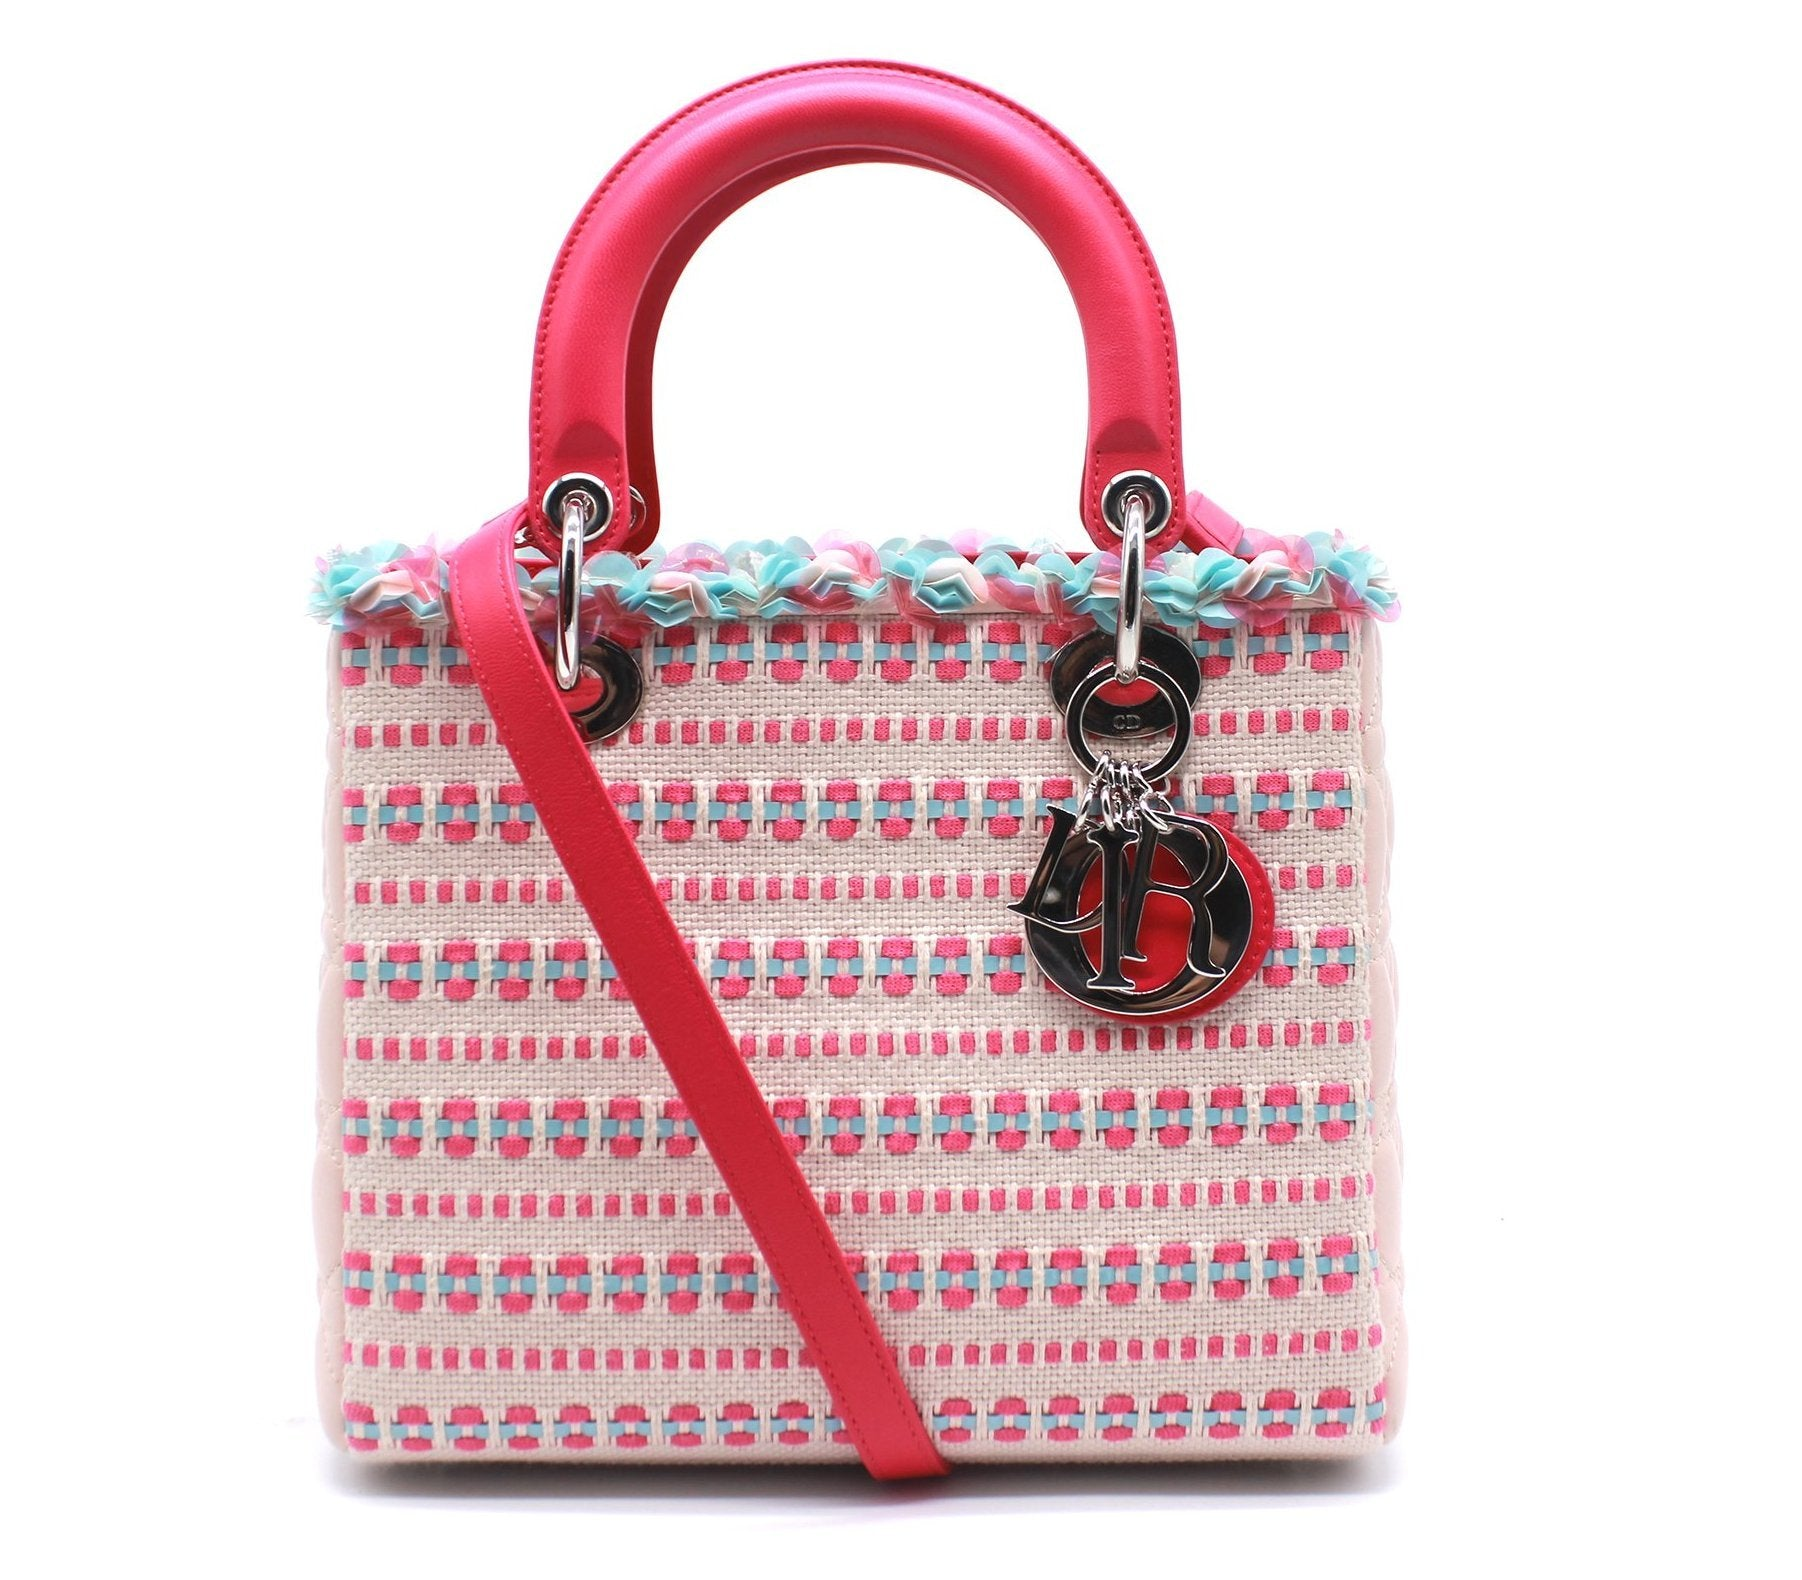 Christian Dior Tweed Medium Lady Dior Bag